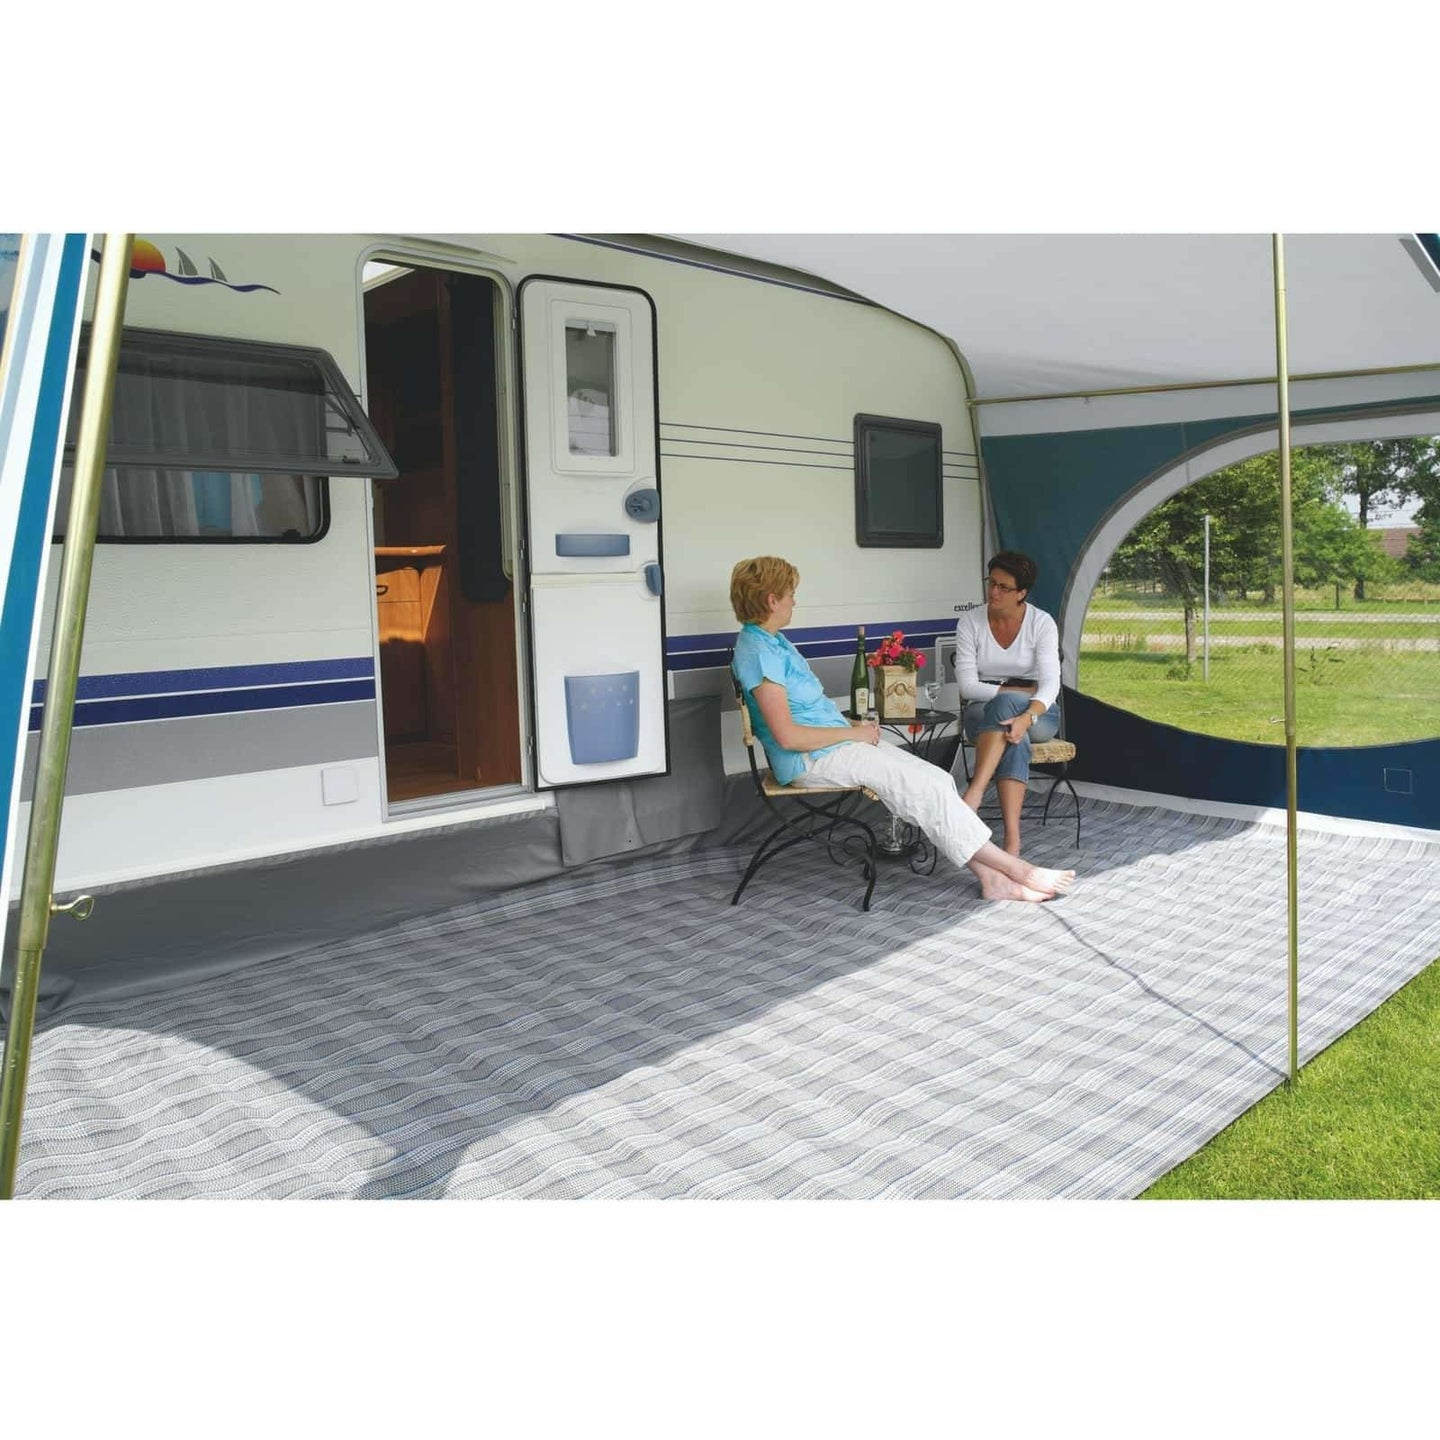 Jolax Awning Carpet for Touring-Plus Triton, Troll, Eriba Feeling 230, Trigano Silver 310/340/380, Maxi 380, Kip Shelter, T@B 320 (2019) made by Walker. A Add-ons sold by Quality Caravan Awnings